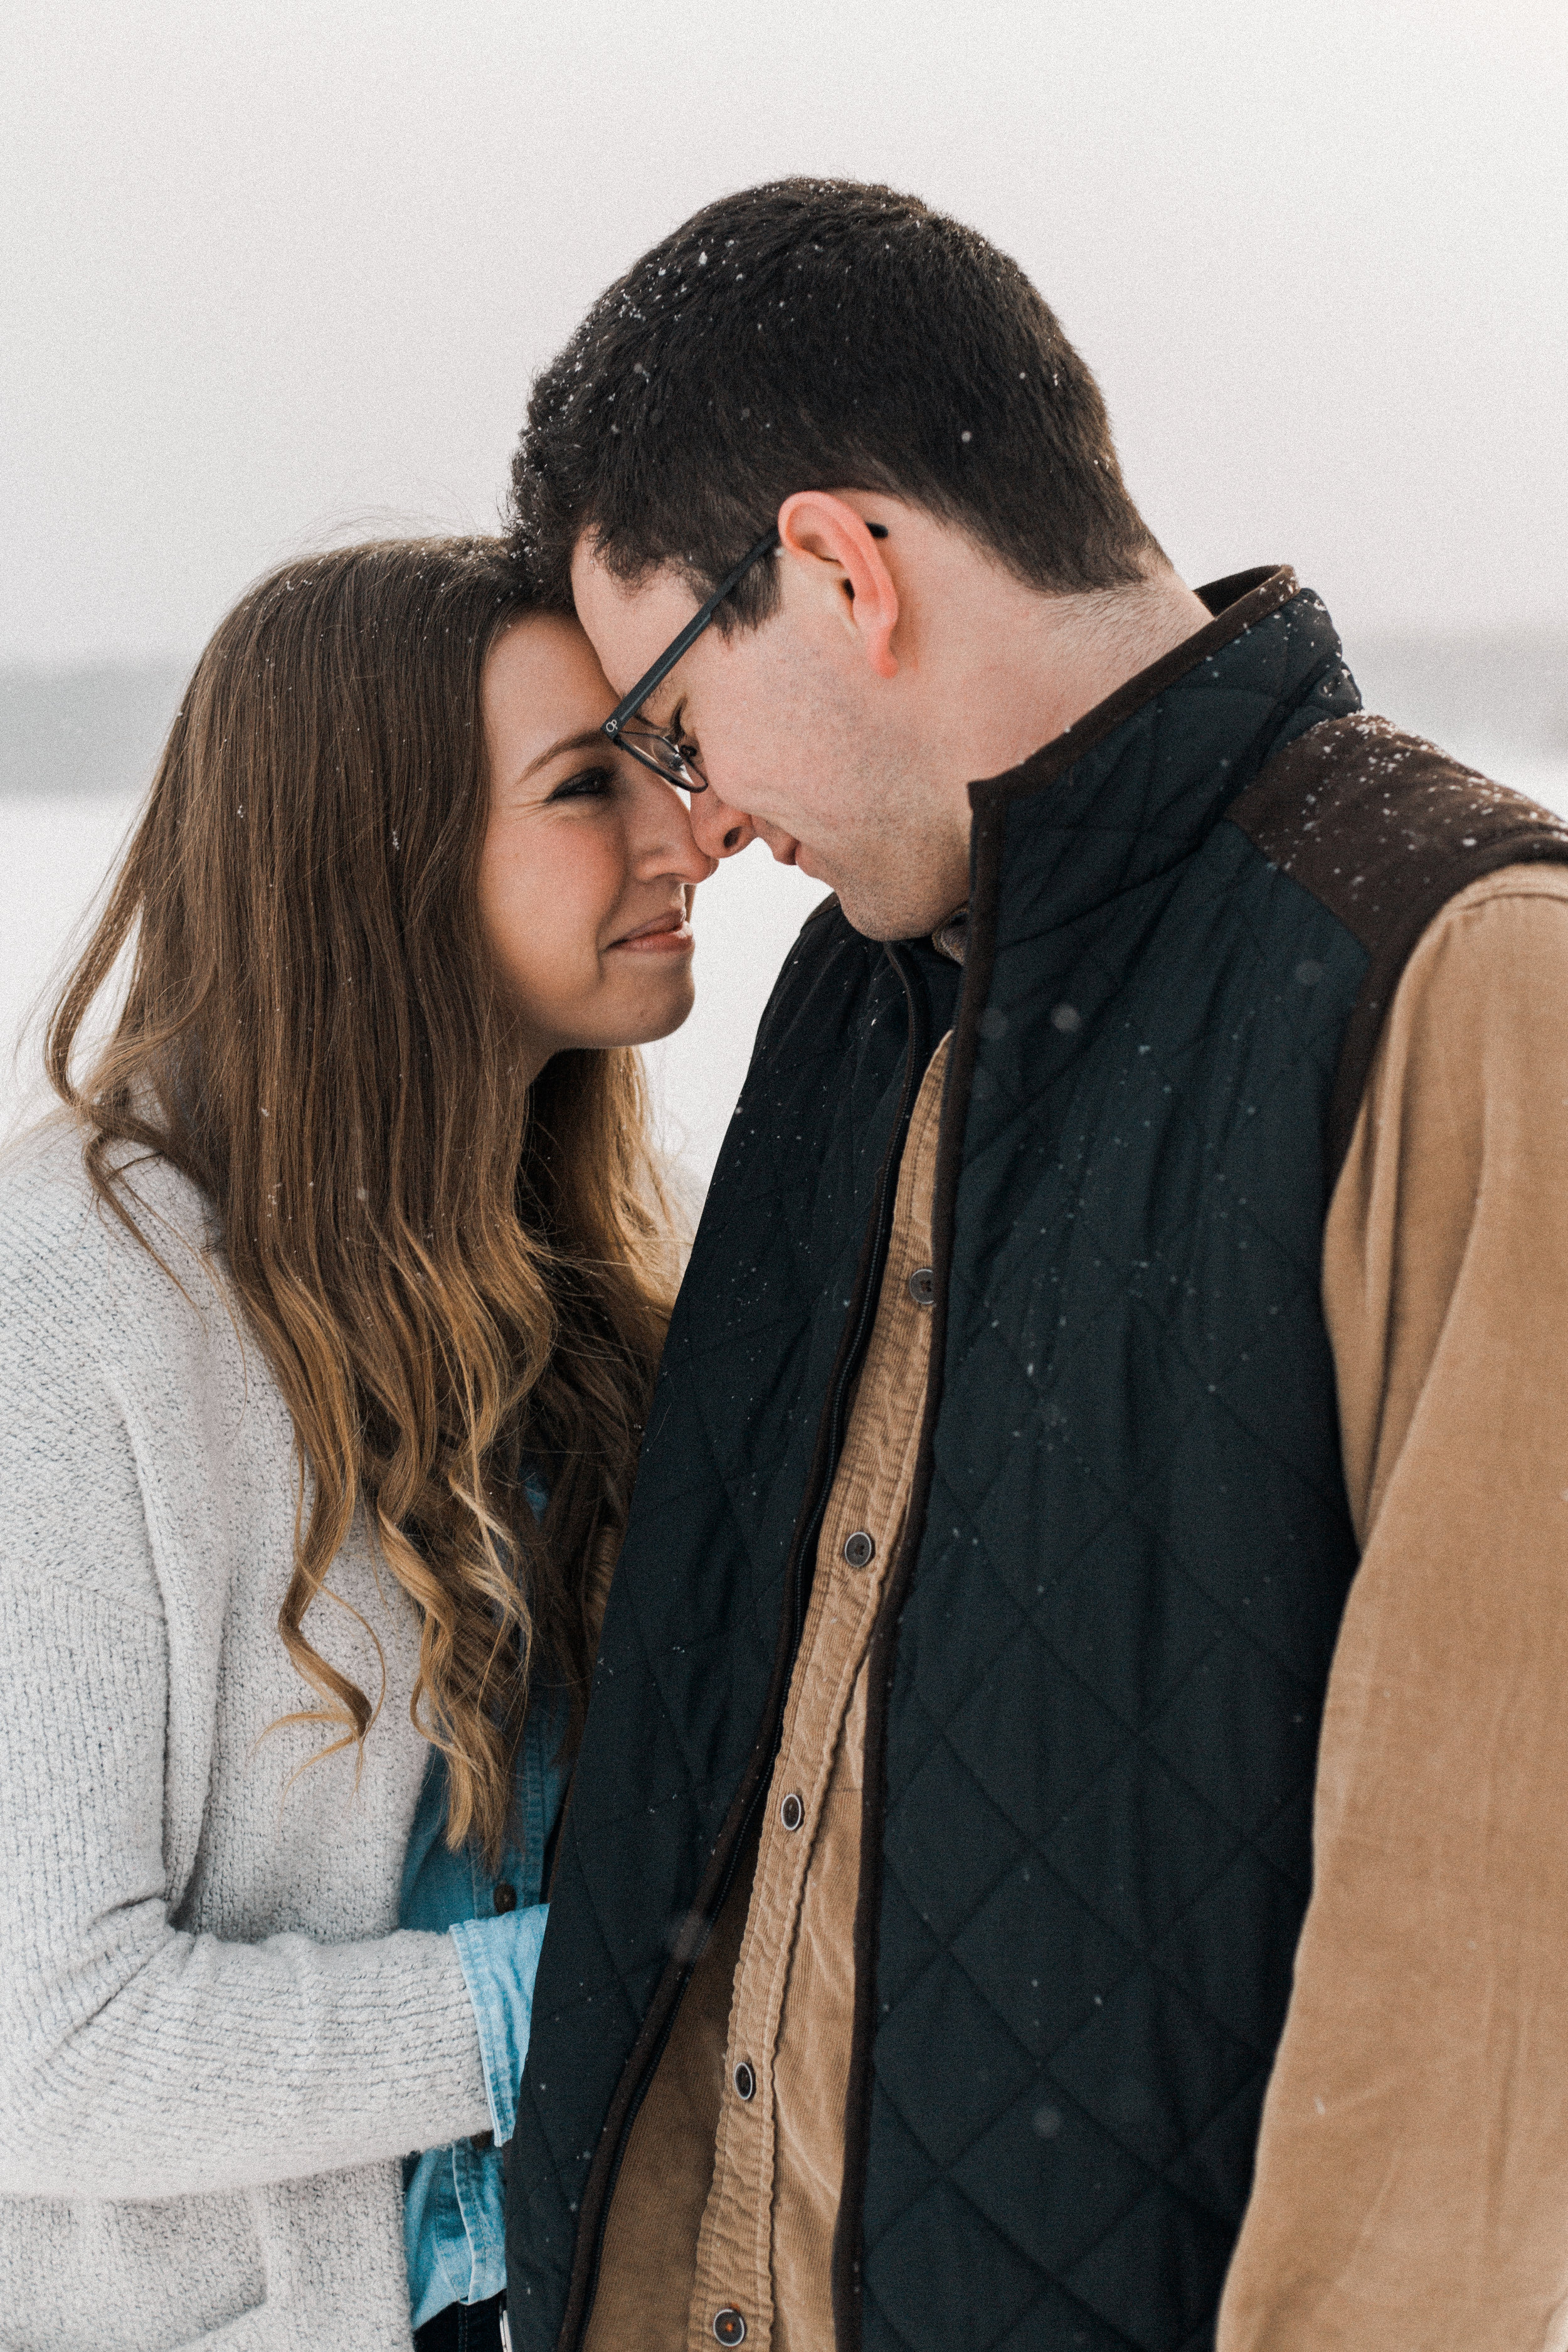 katie_graham_photography_engagement_session_winter_long_point_state_park_bemus_point_new_york_wedding_photographer_photography_andrew_and_kaylie